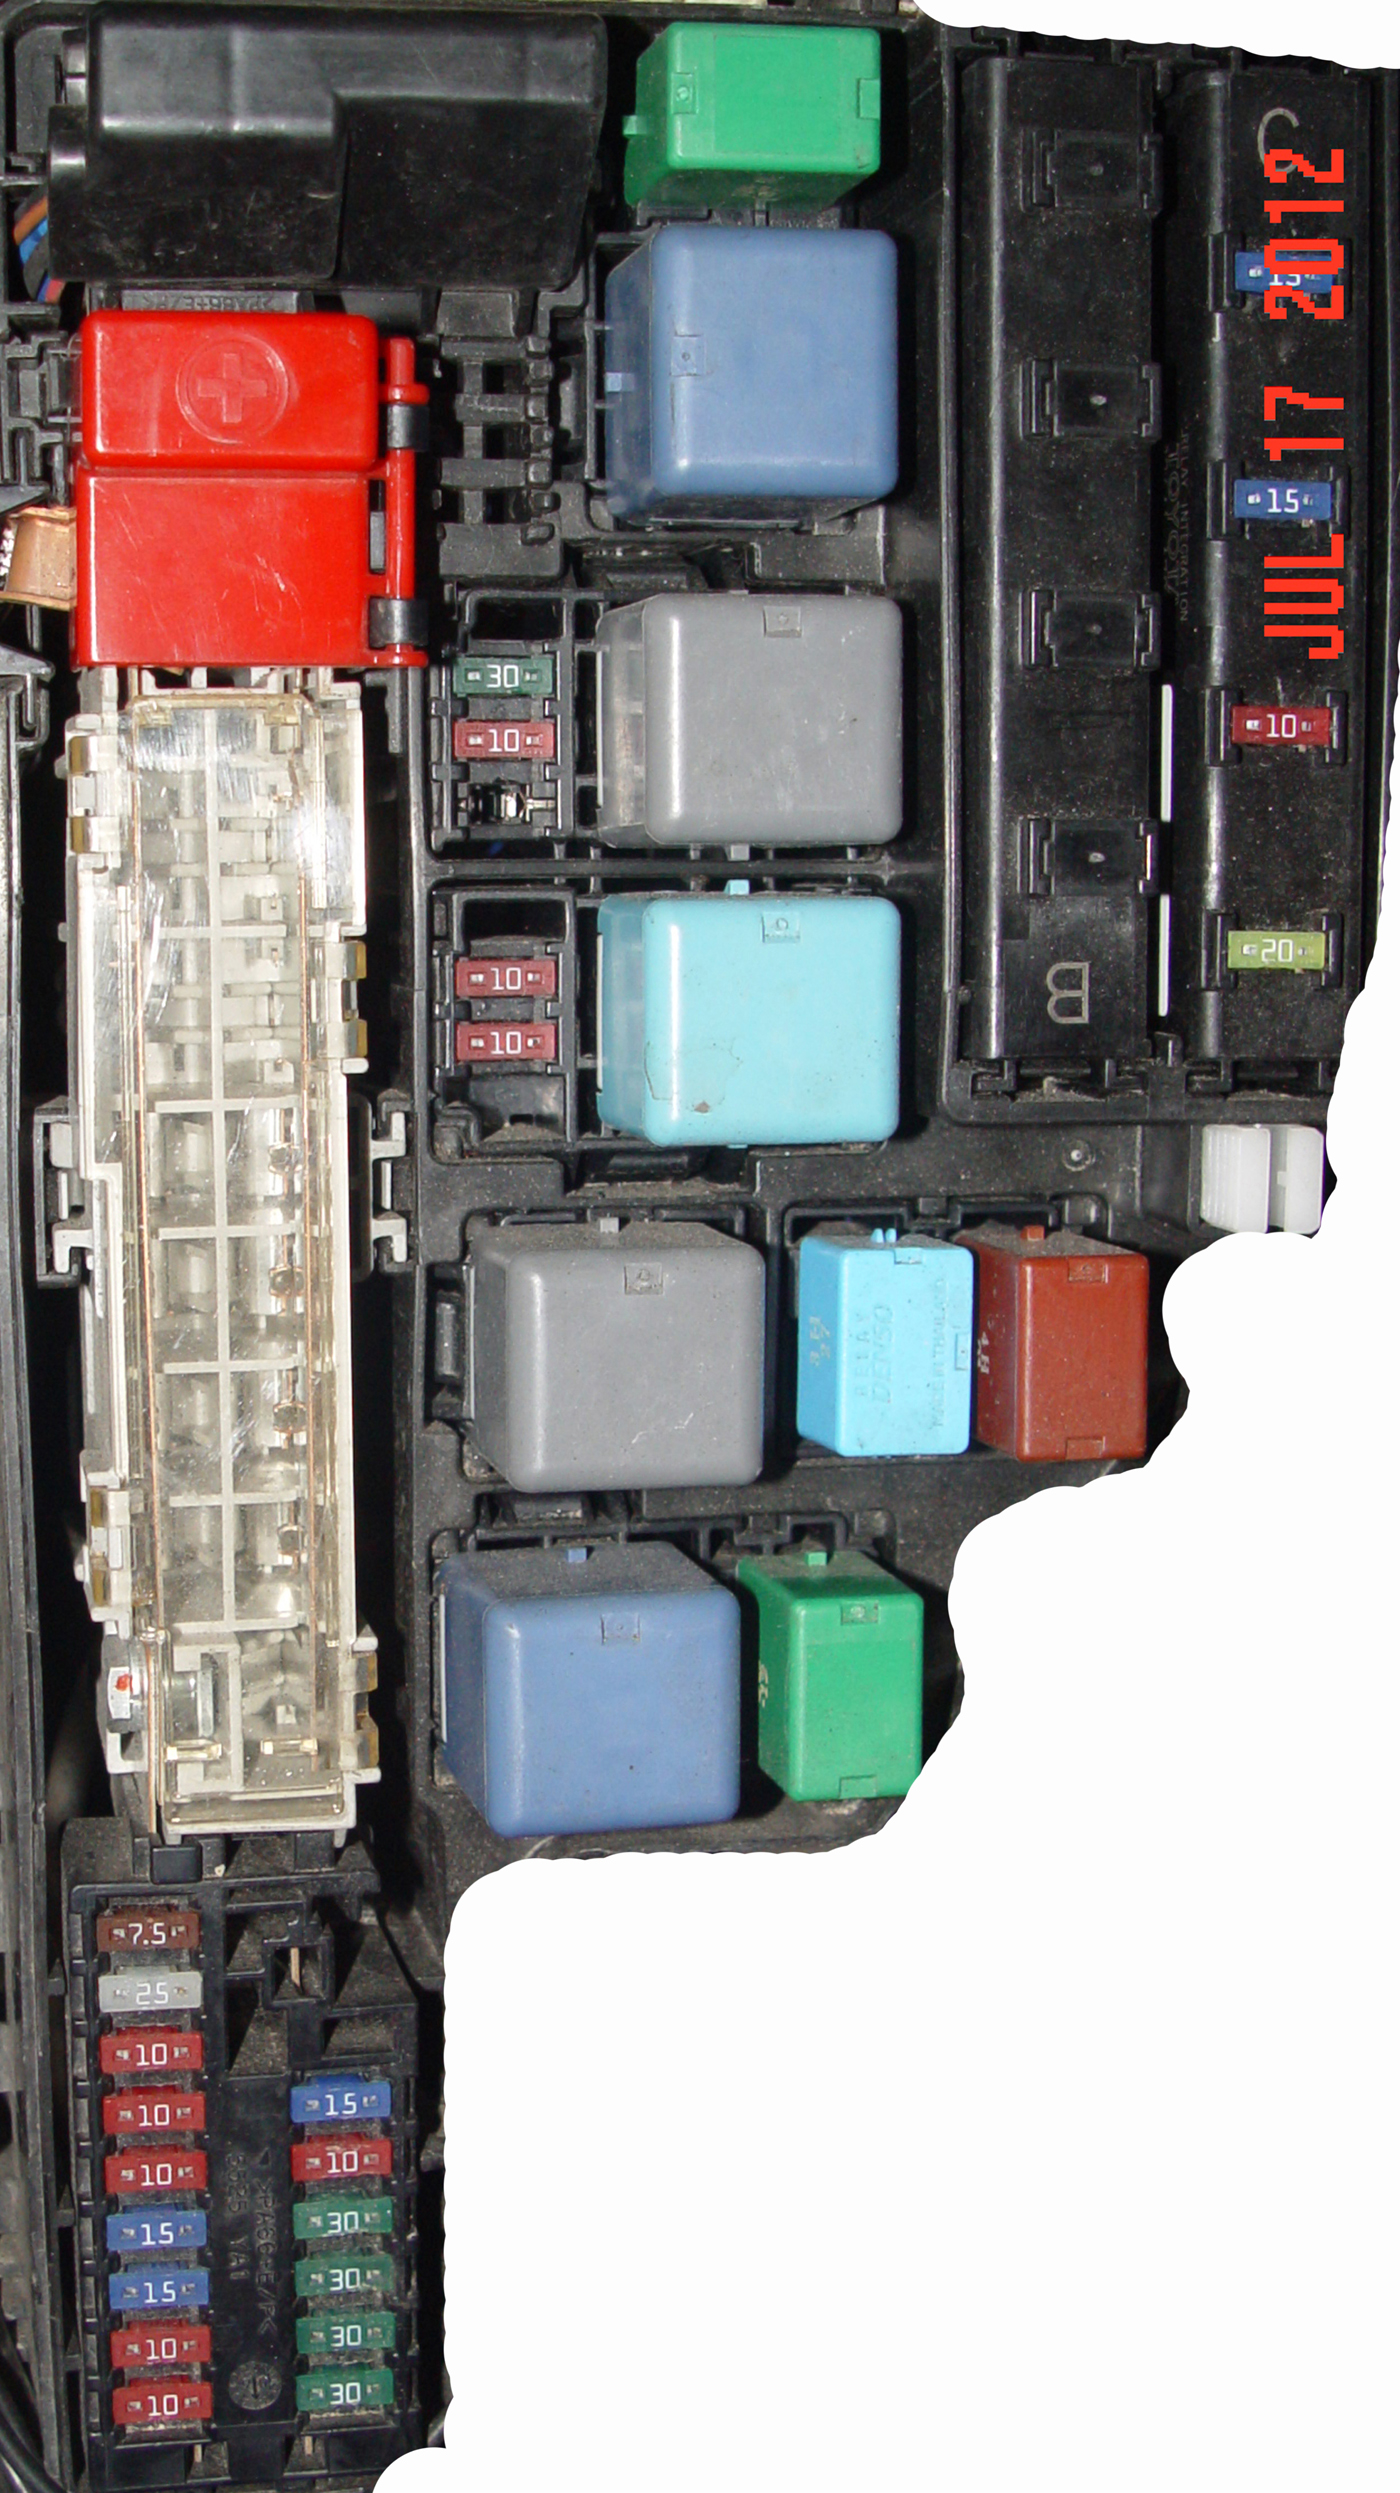 2004 toyota prius fuse box diagram iirGtIL 2008 toyota prius fuse box 2007 toyota prius fuse box \u2022 free access to 2010 prius fuse box at mifinder.co